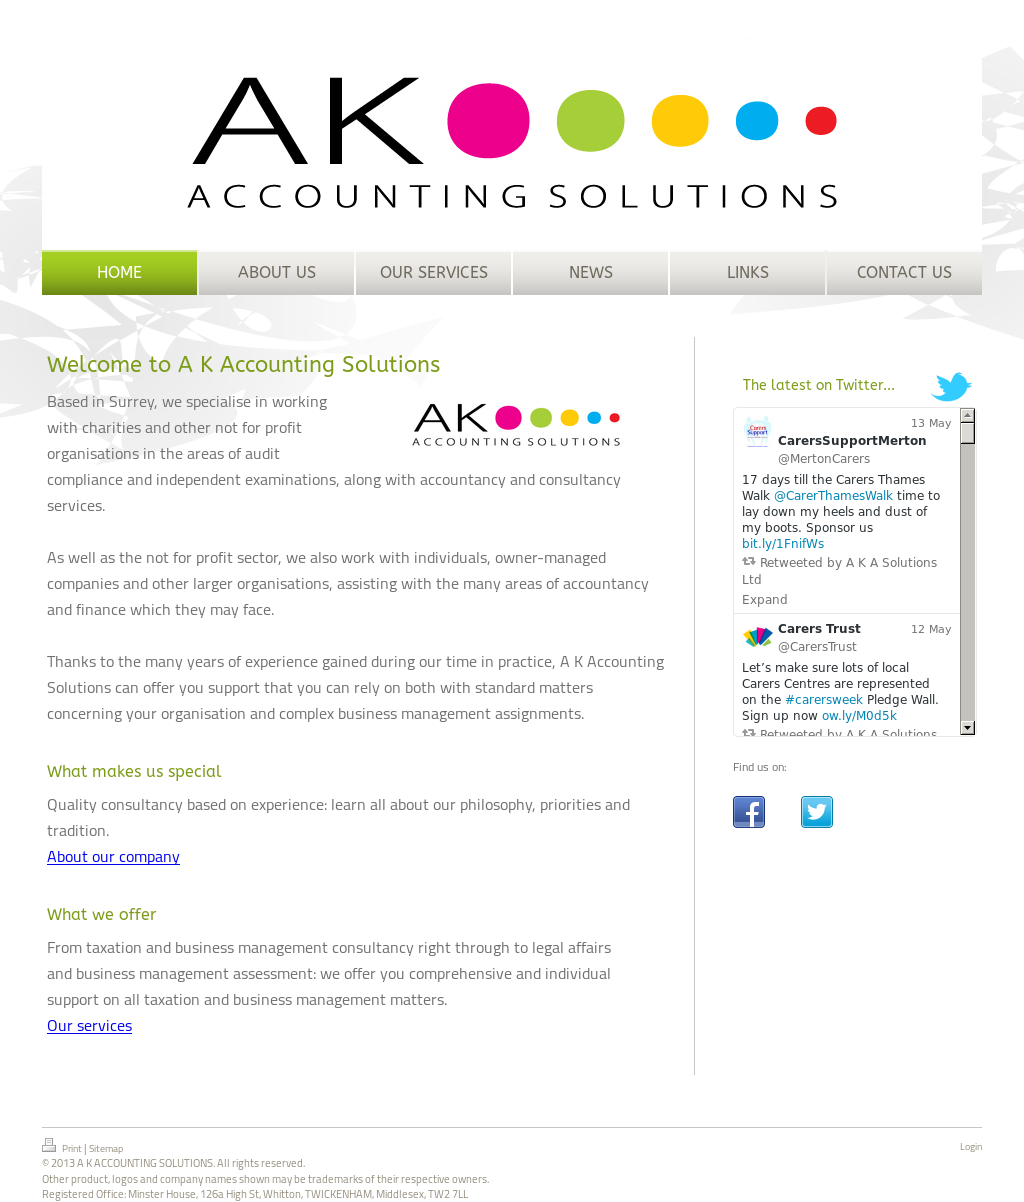 A K Accounting Solutions Competitors, Revenue and Employees